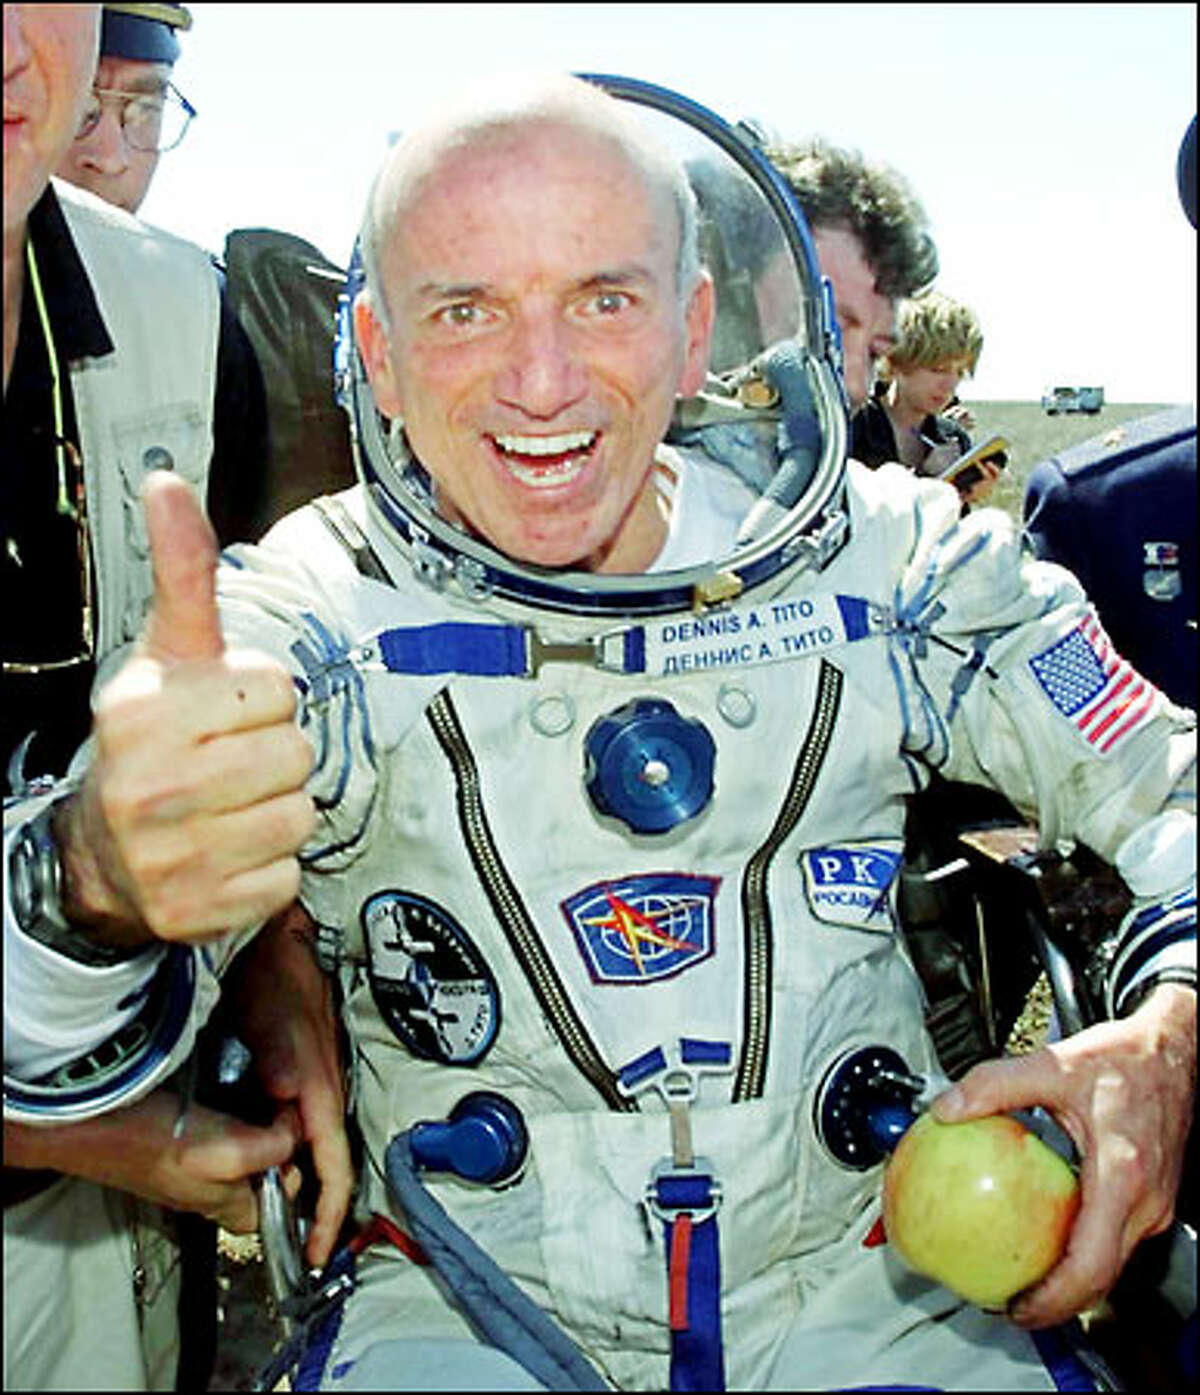 American multimillionaire Dennis Tito, 60, gives his seal of approval shortly after his landing yesterday about 50 miles northeast of Arkalyk, Kazakstan.